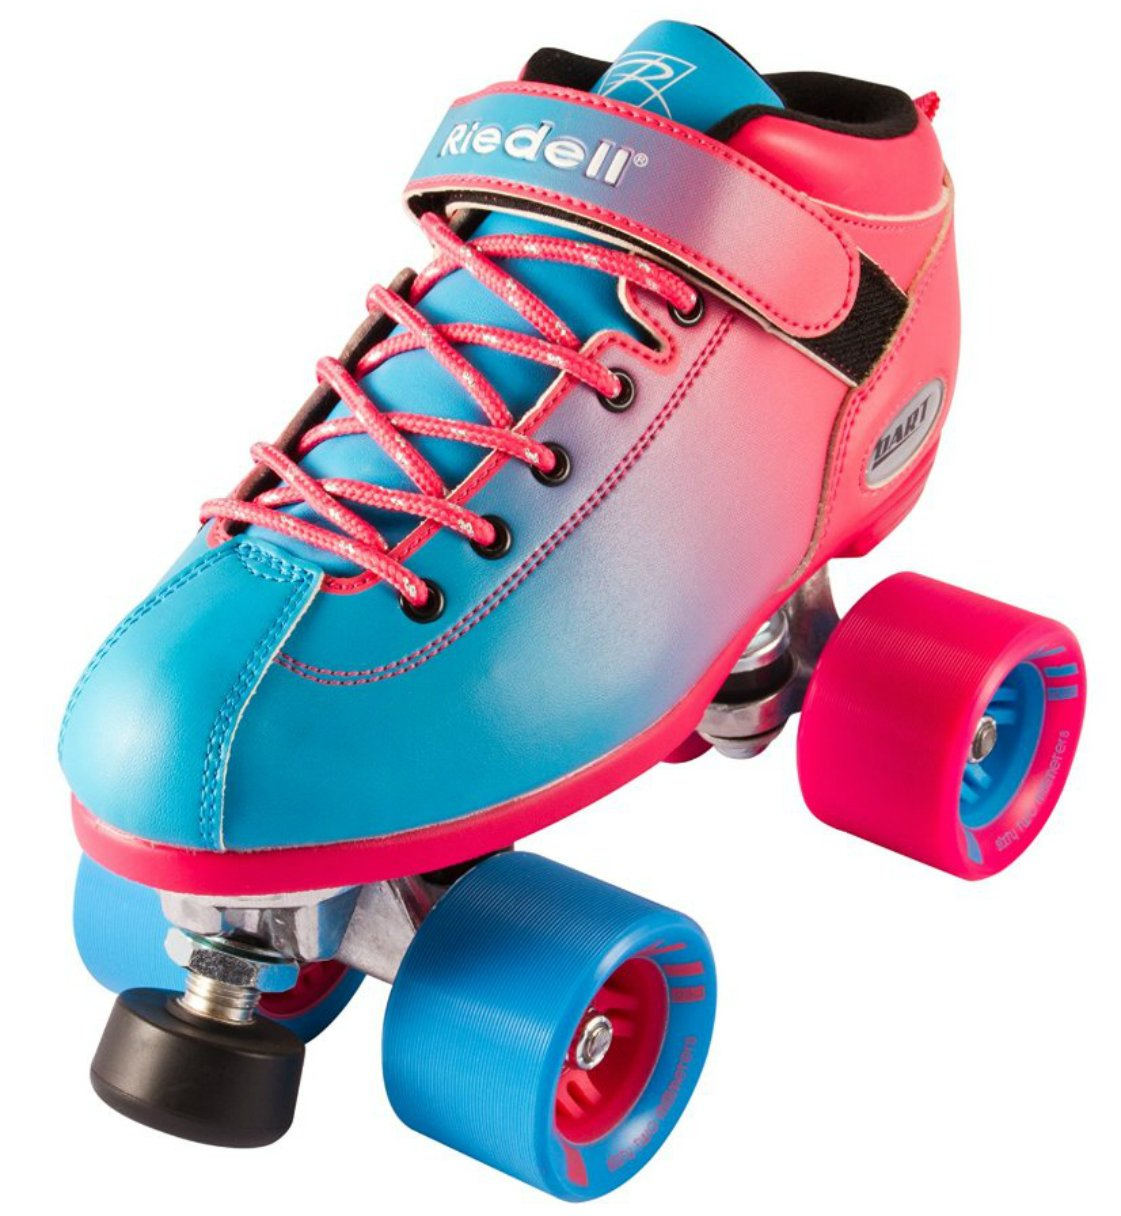 New! Riedell Dart 2 Tone Pink & Blue Ombre Quad Roller Speed Skate Youth & Adult Sizes! (Mens 8) by Riedell Skates